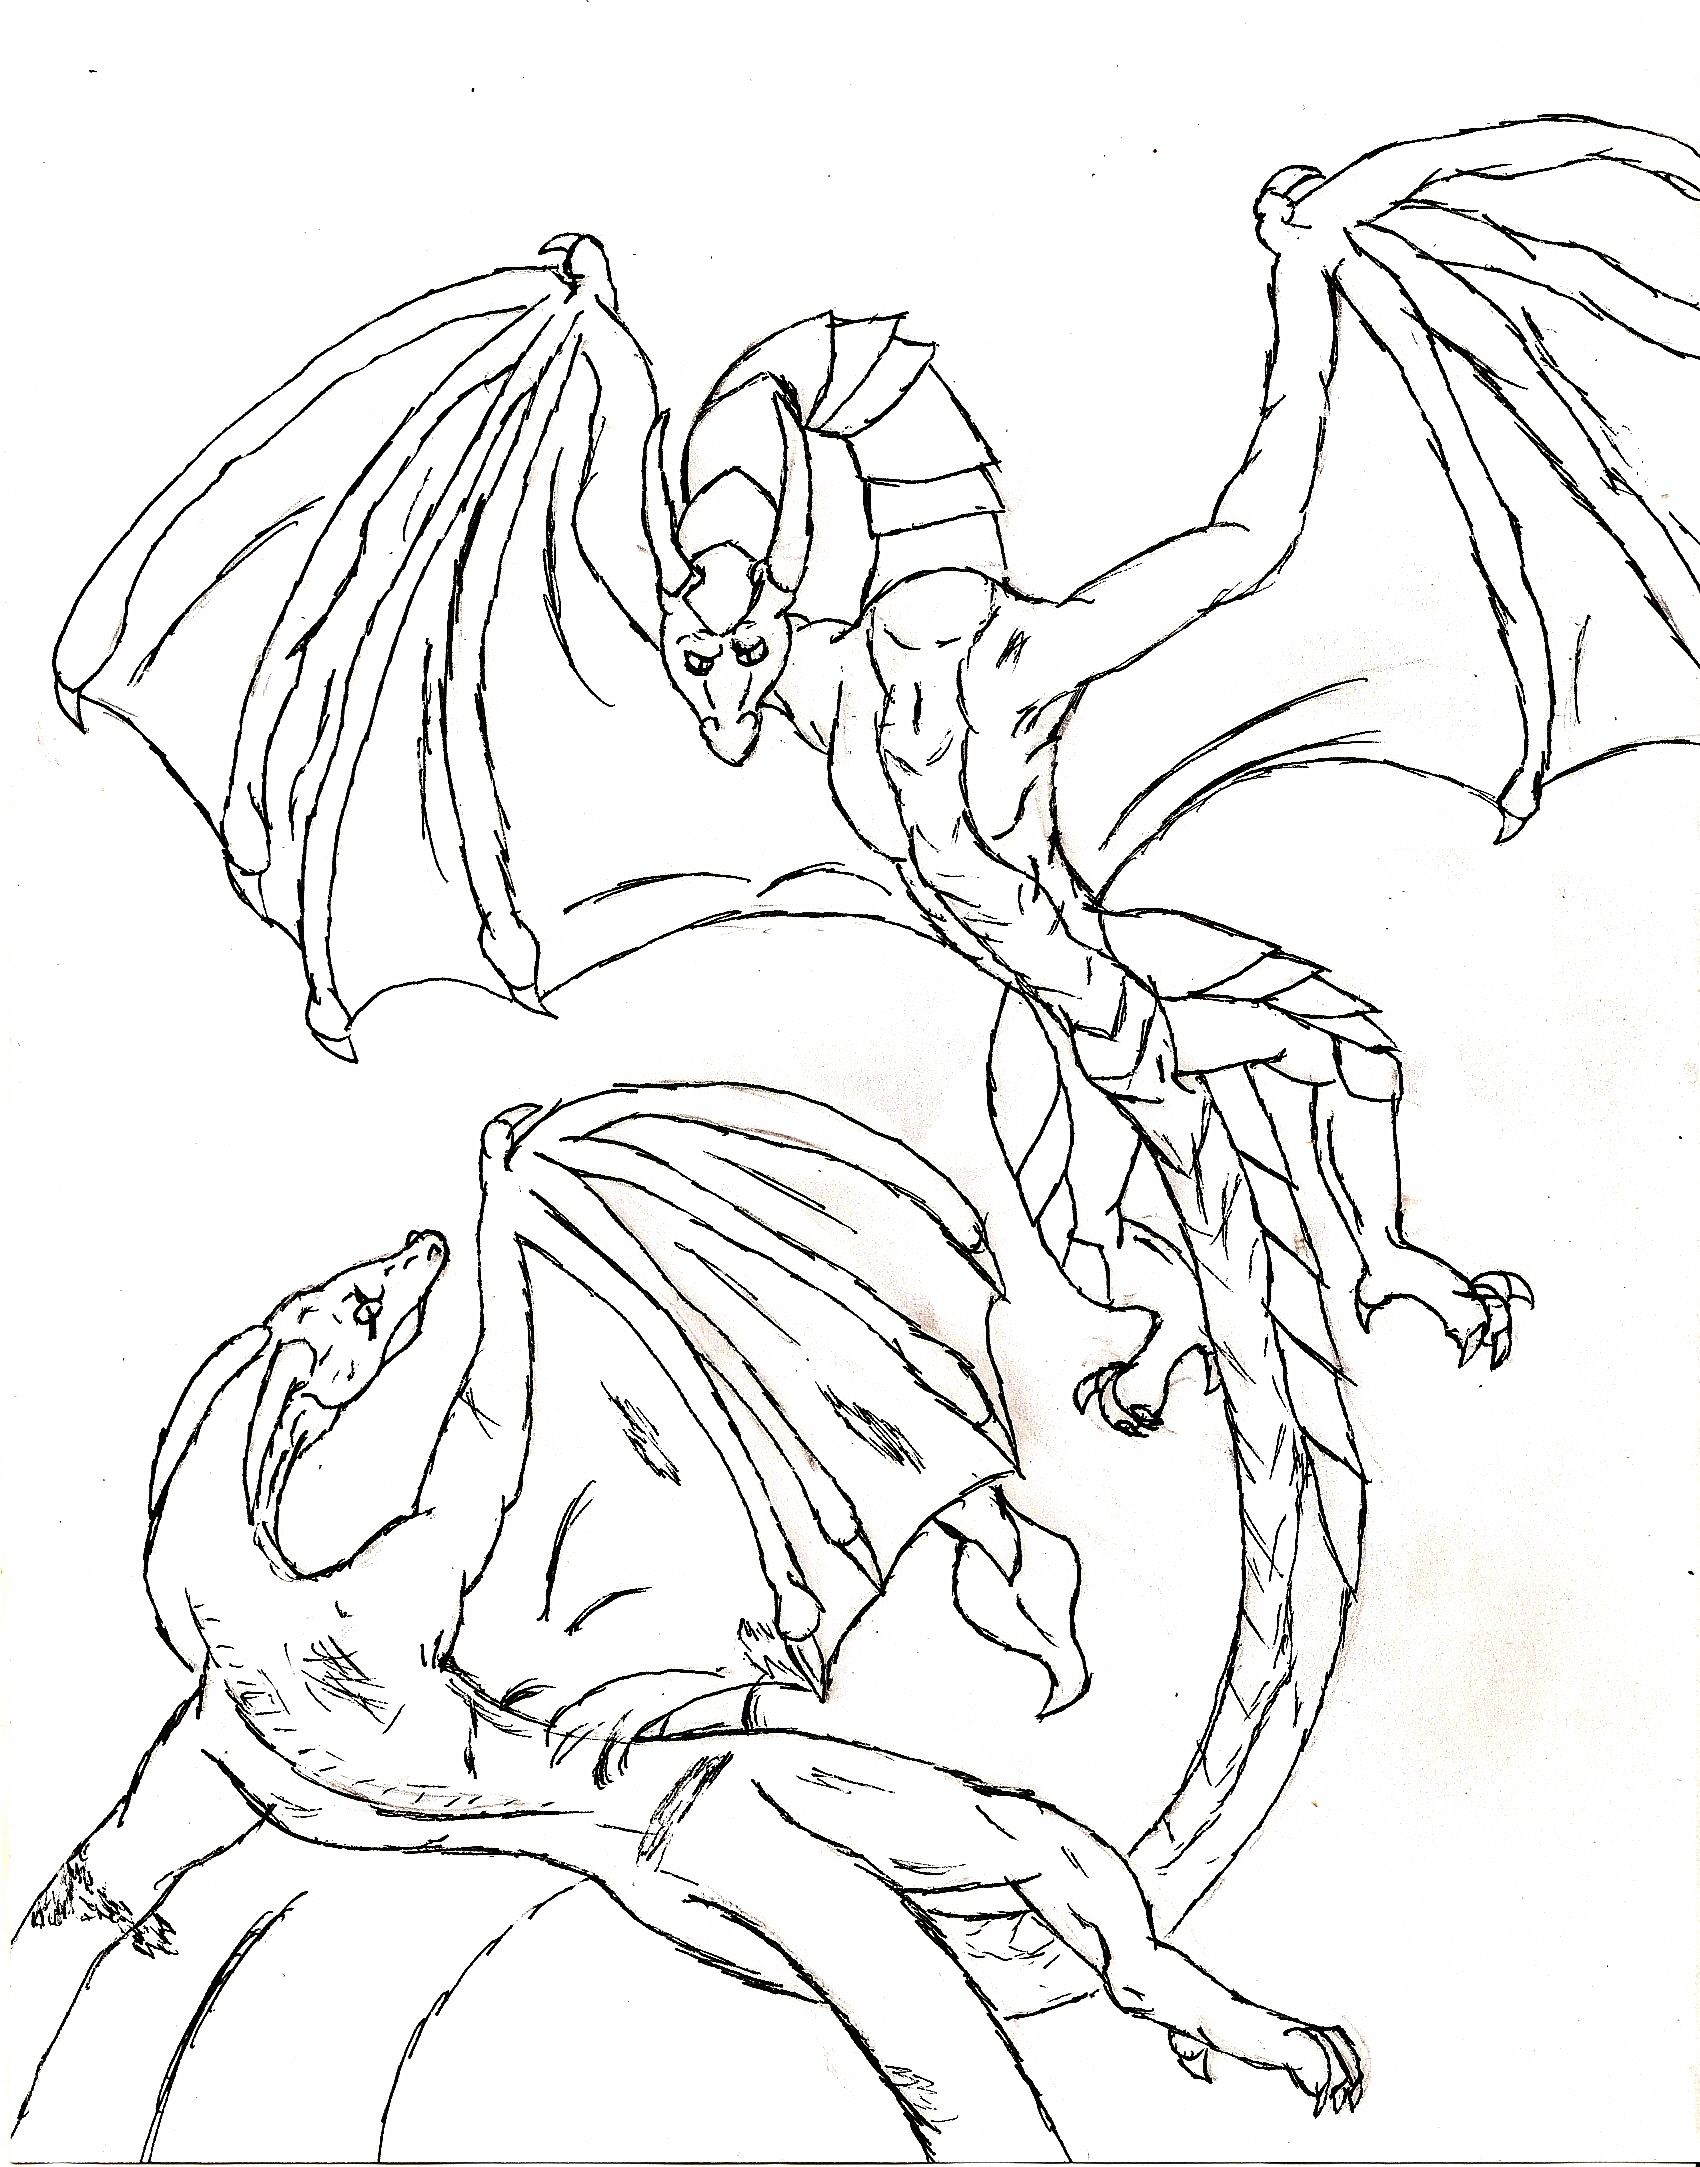 Free Printable Dragon Coloring Pages For Kids Dragon Coloring Page Dinosaur Coloring Pages Coloring Pages For Kids